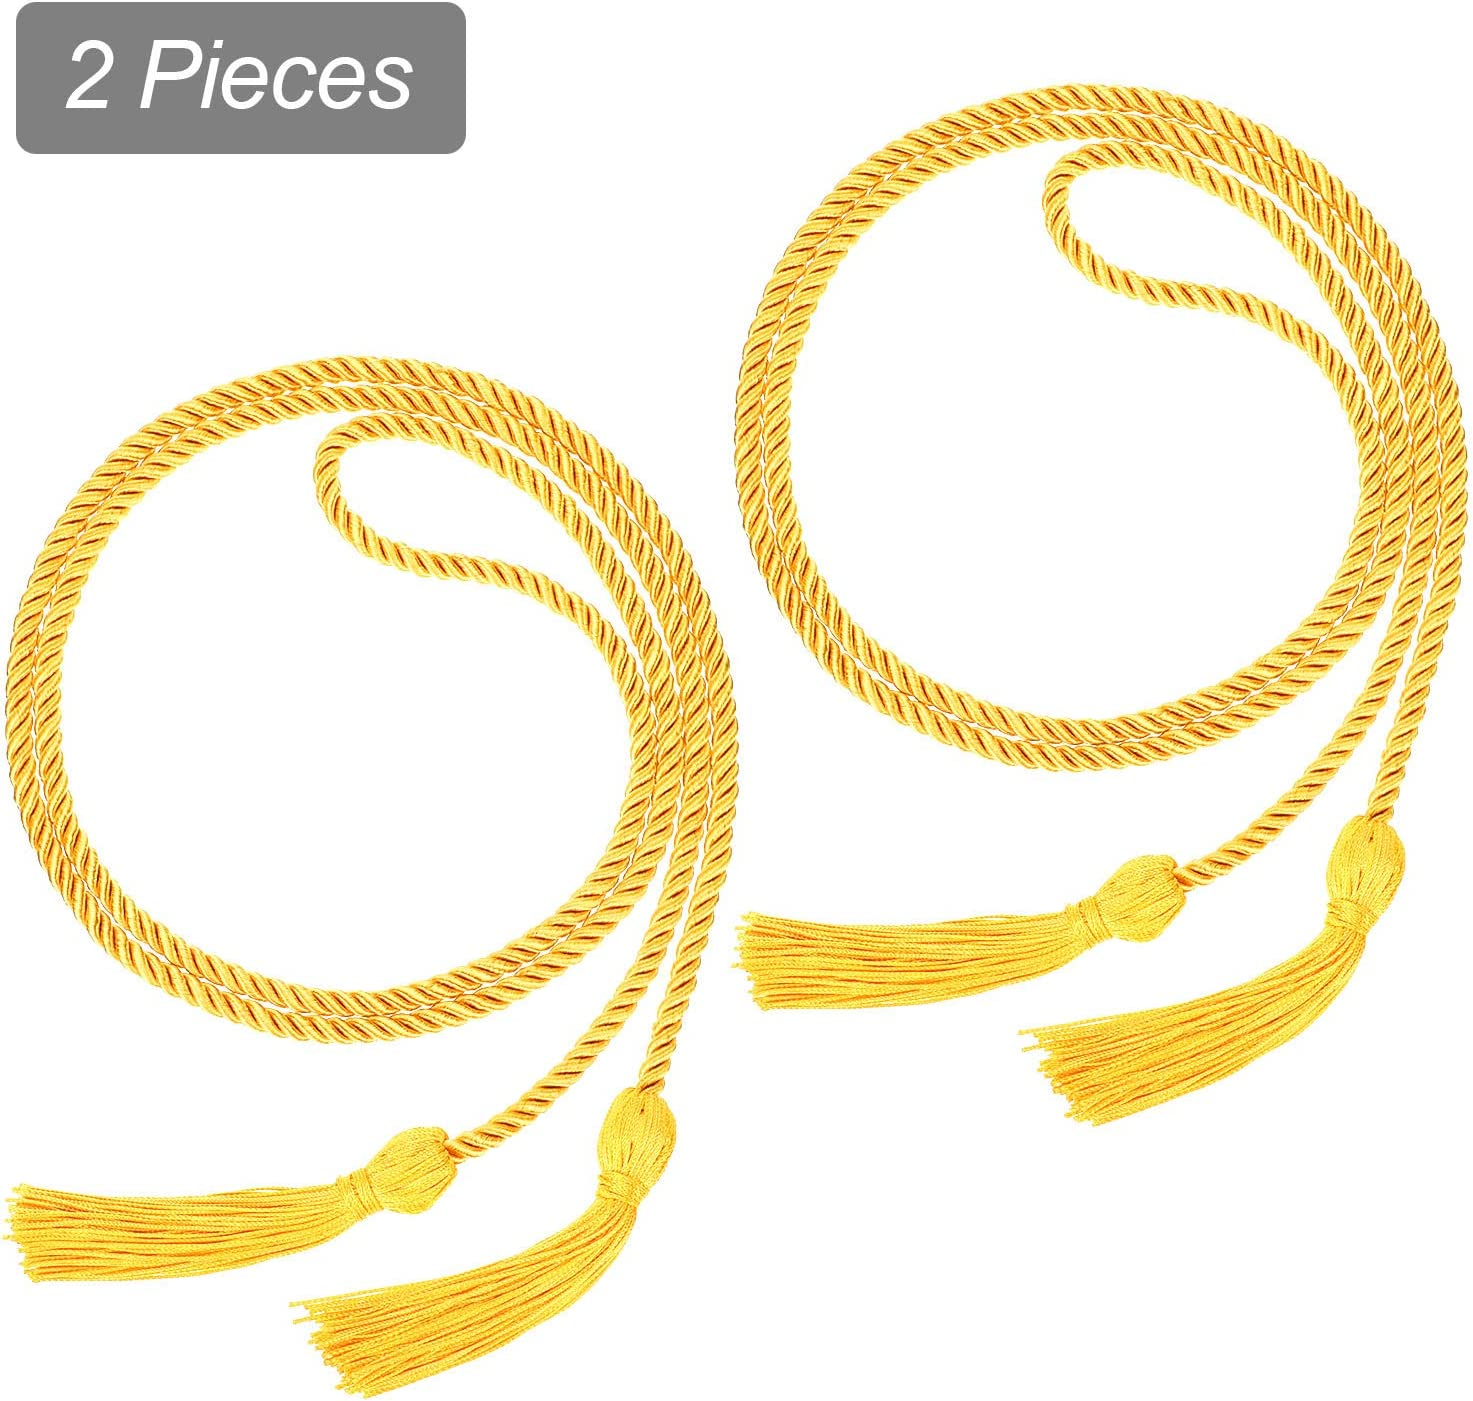 Gold with Purple 2 Pieces Graduation Cords Polyester Yarn Honor Cord with Tassel for Graduation Students